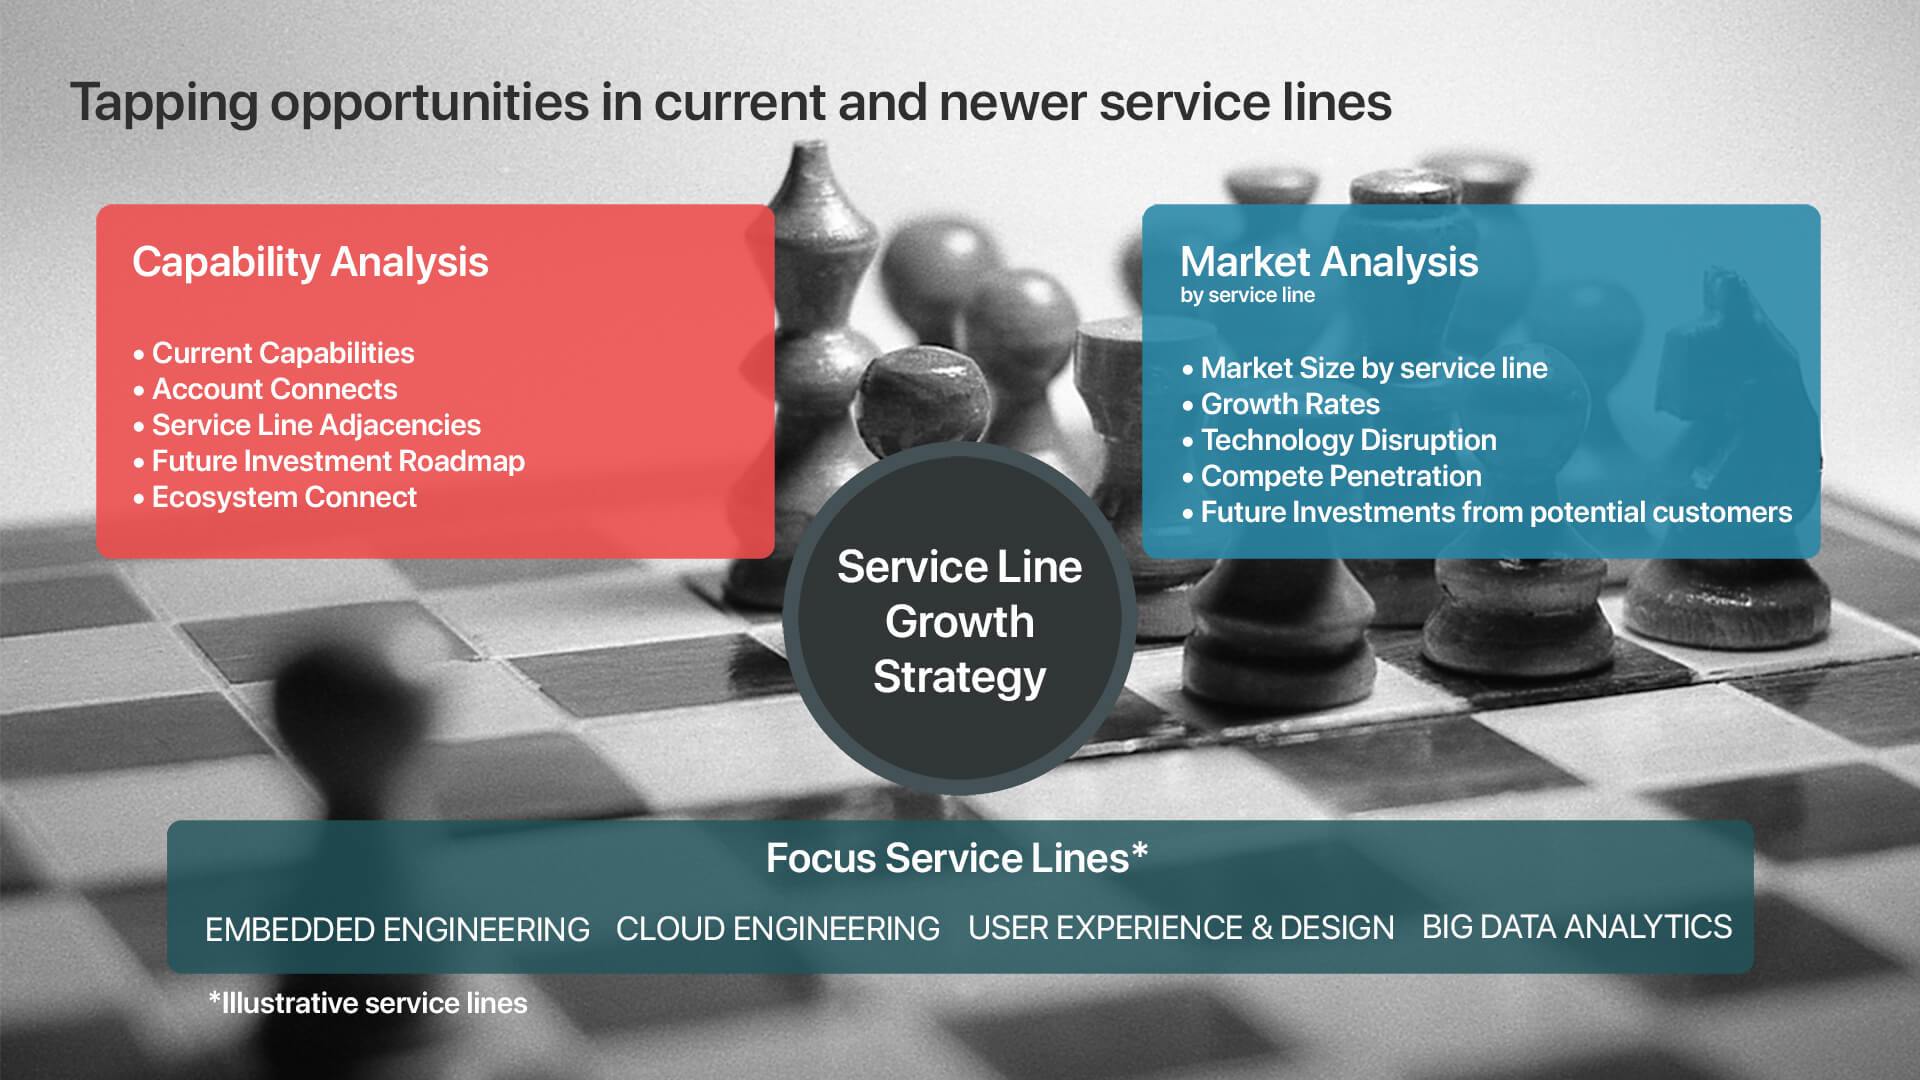 Service Line Growth Strategy